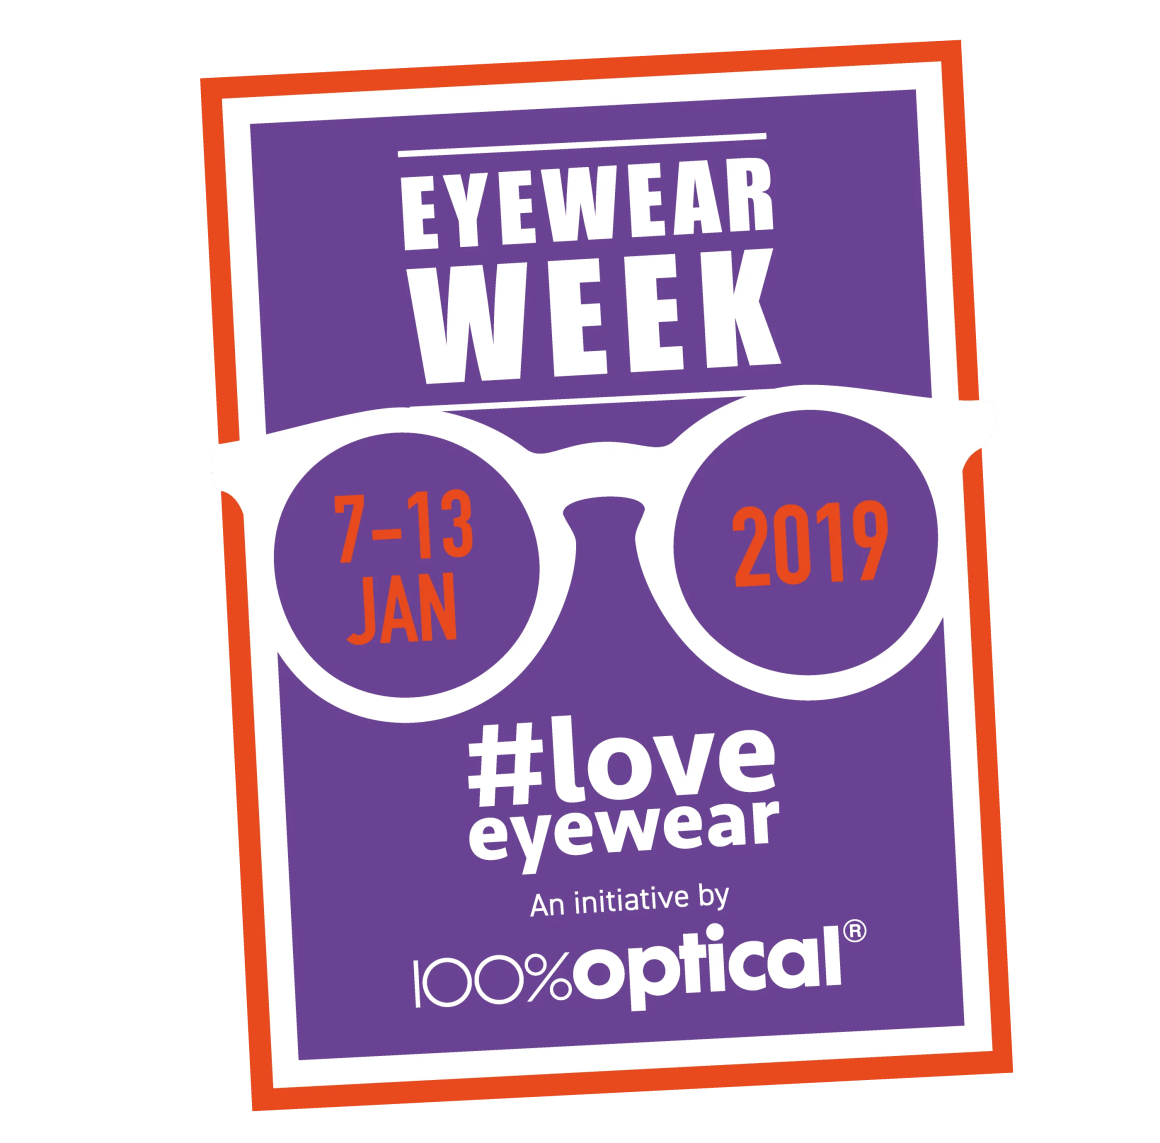 Love Eyewear Week